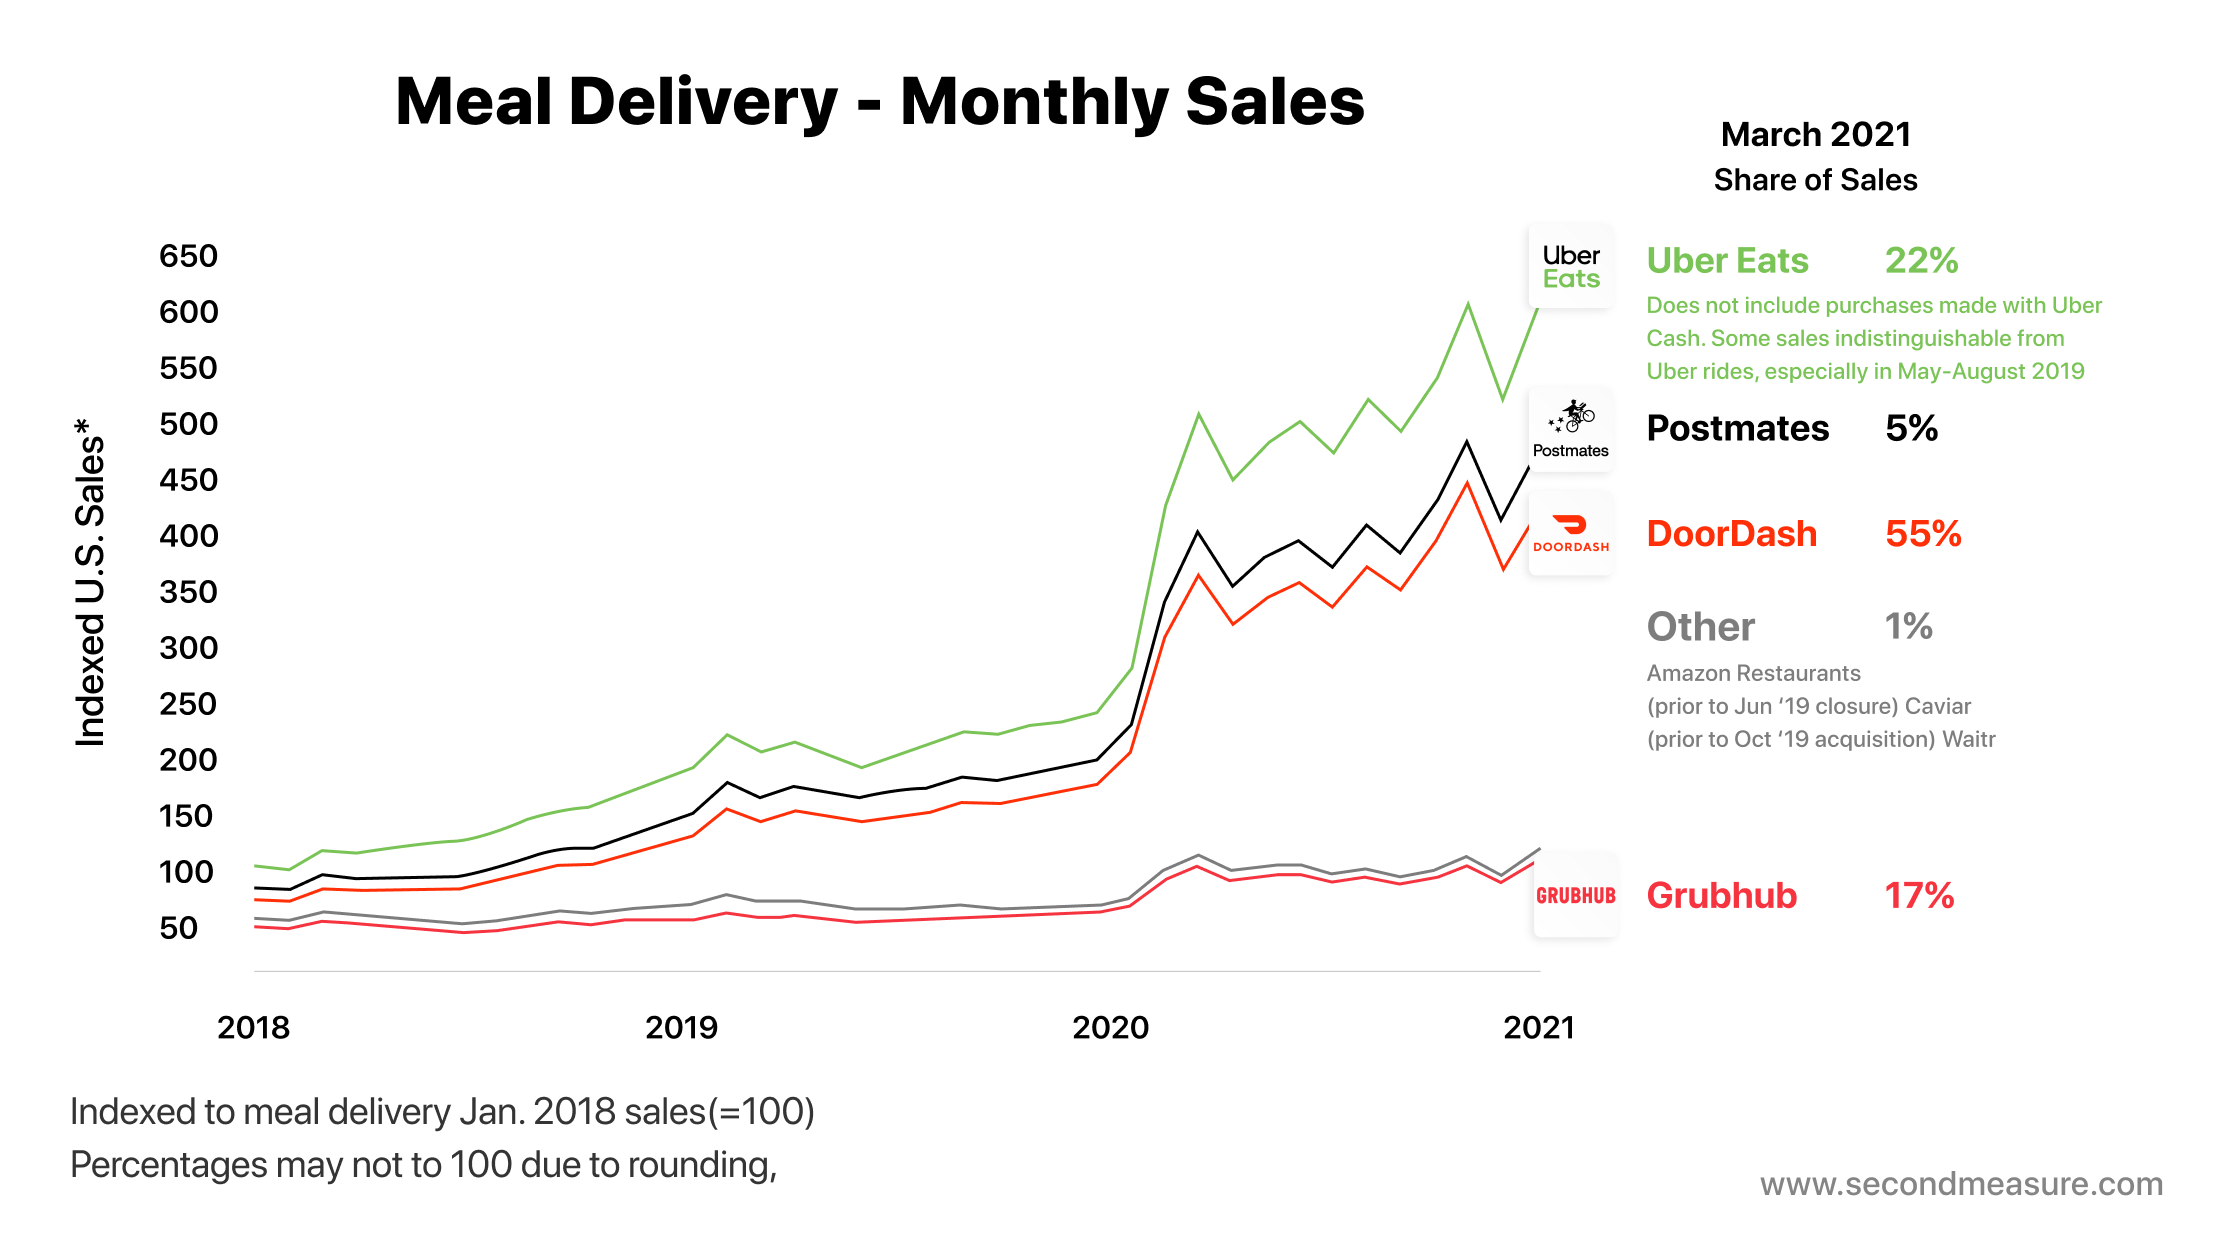 Meal Delivery Sales